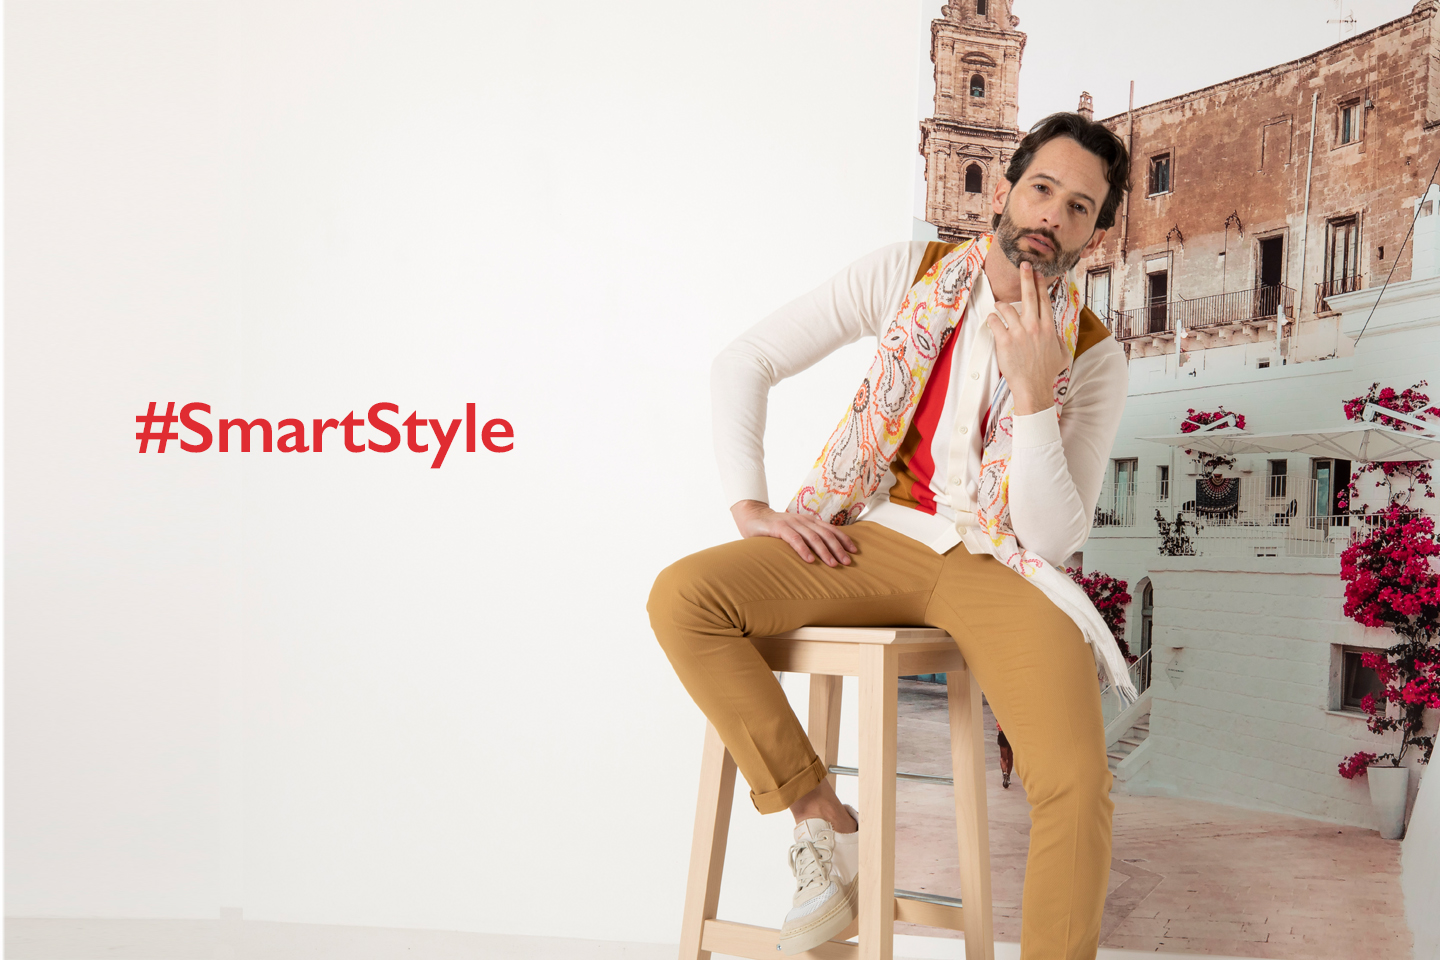 Smart Style, il nuovo outfit! – Man Look 170